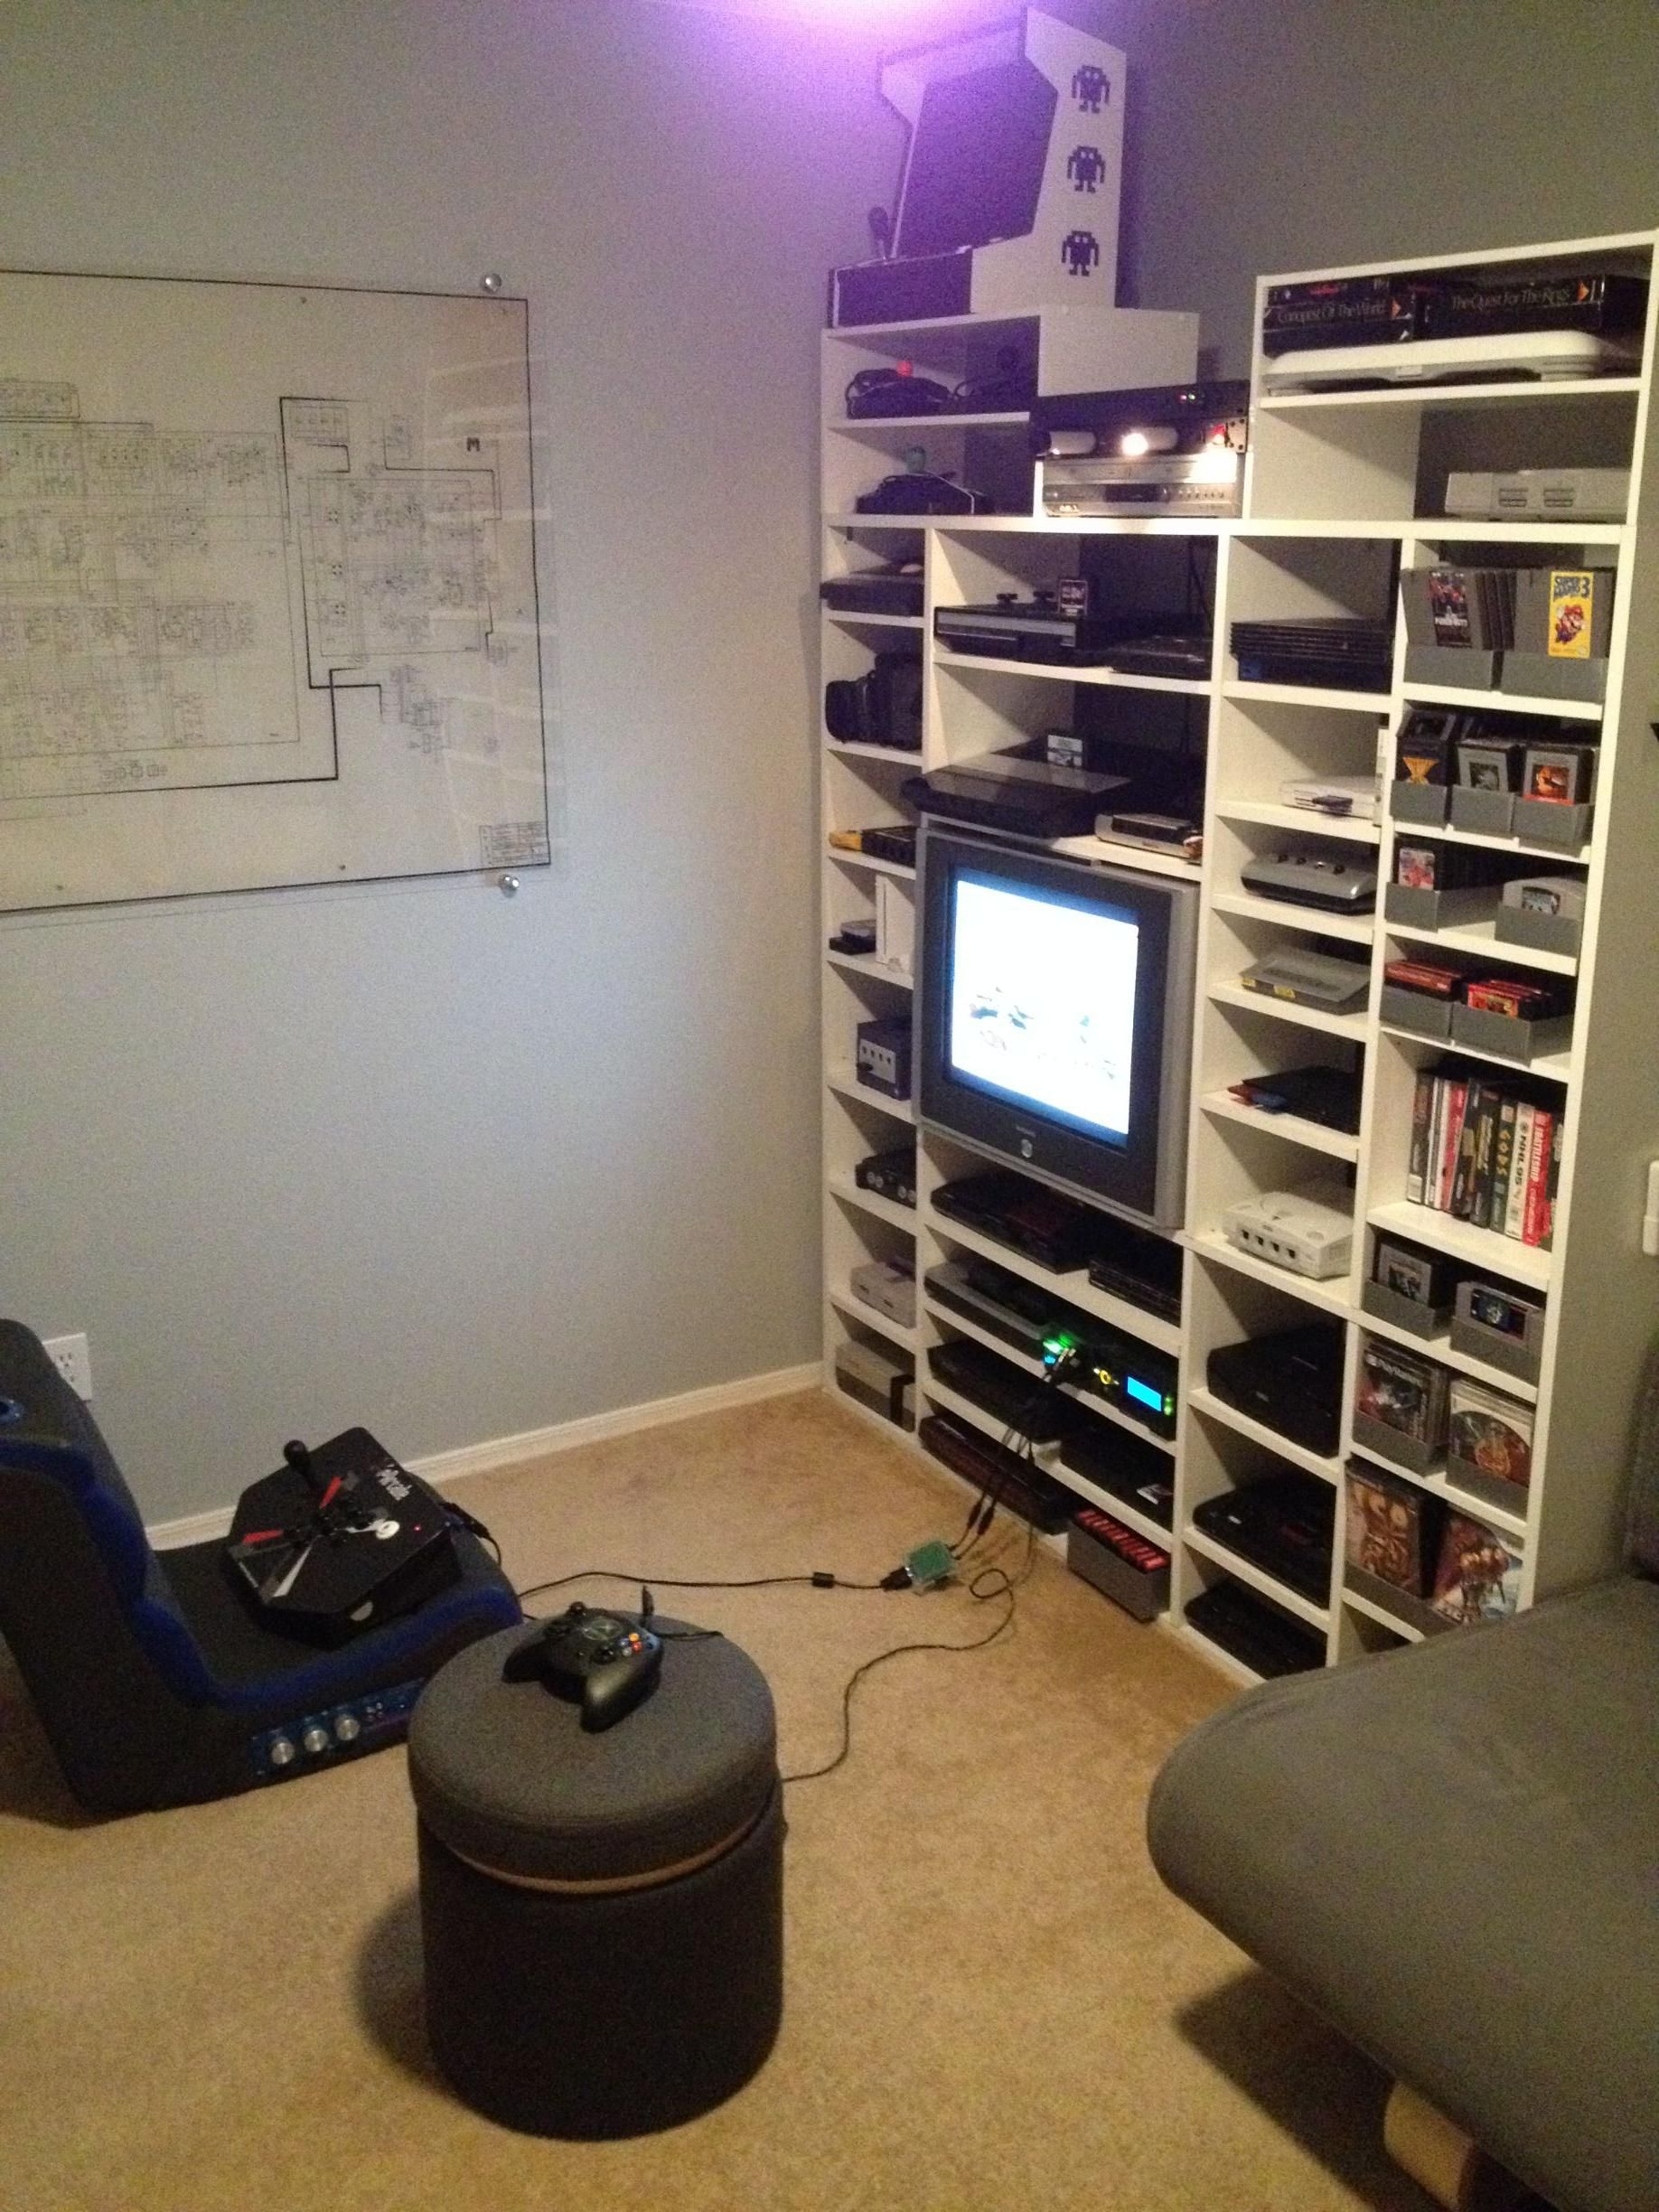 Video Game Console Wall Game Room Shelves Via Reddit User